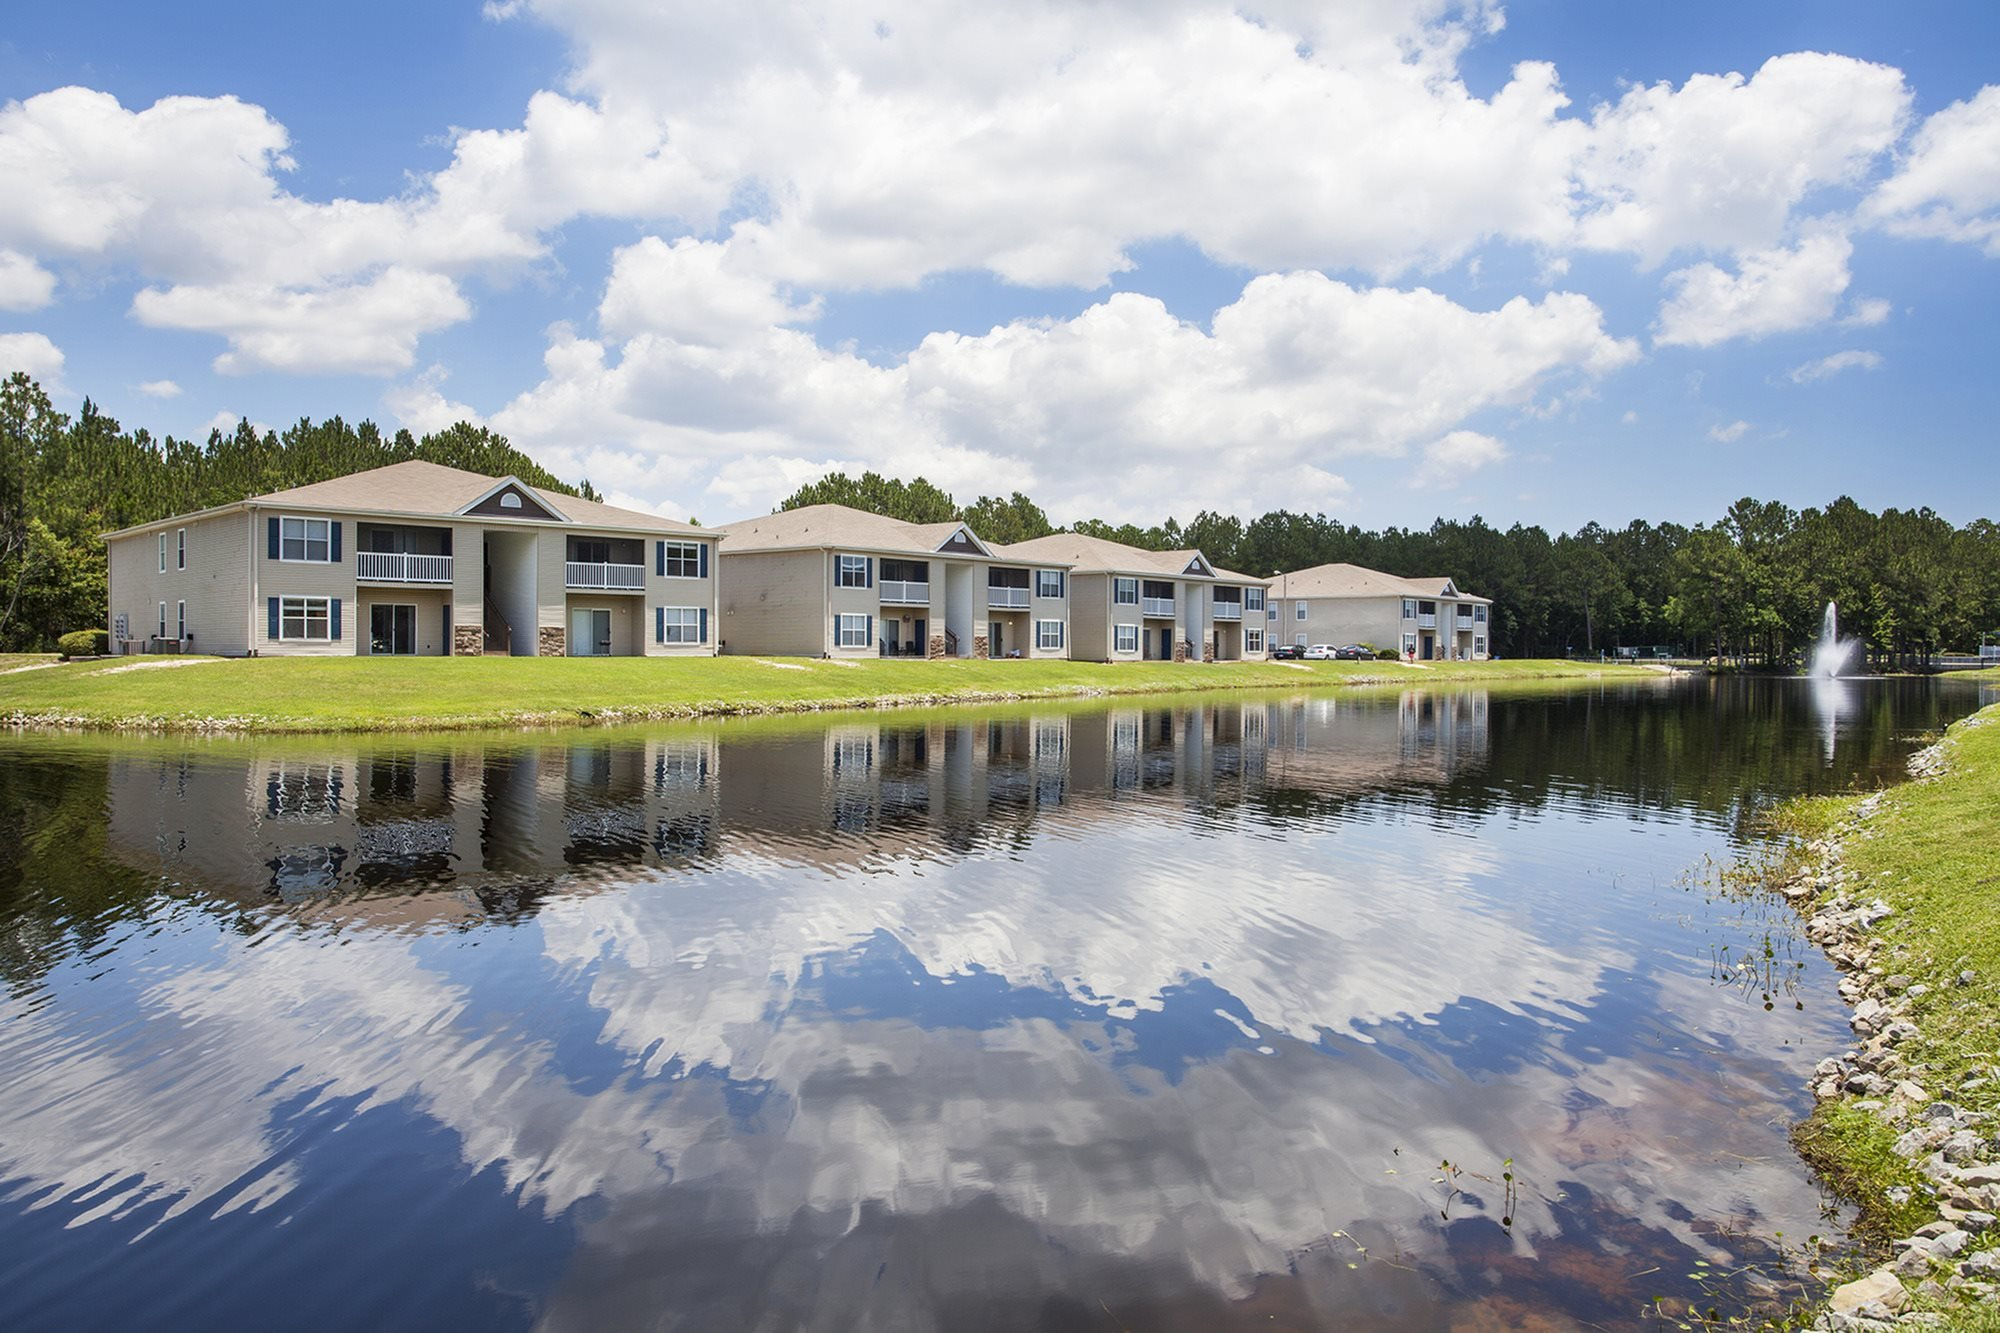 Ripples in the water of the stocked lake reflect the Florida sky like a painting at Crystal Lake Apartments in Pensacola, FL